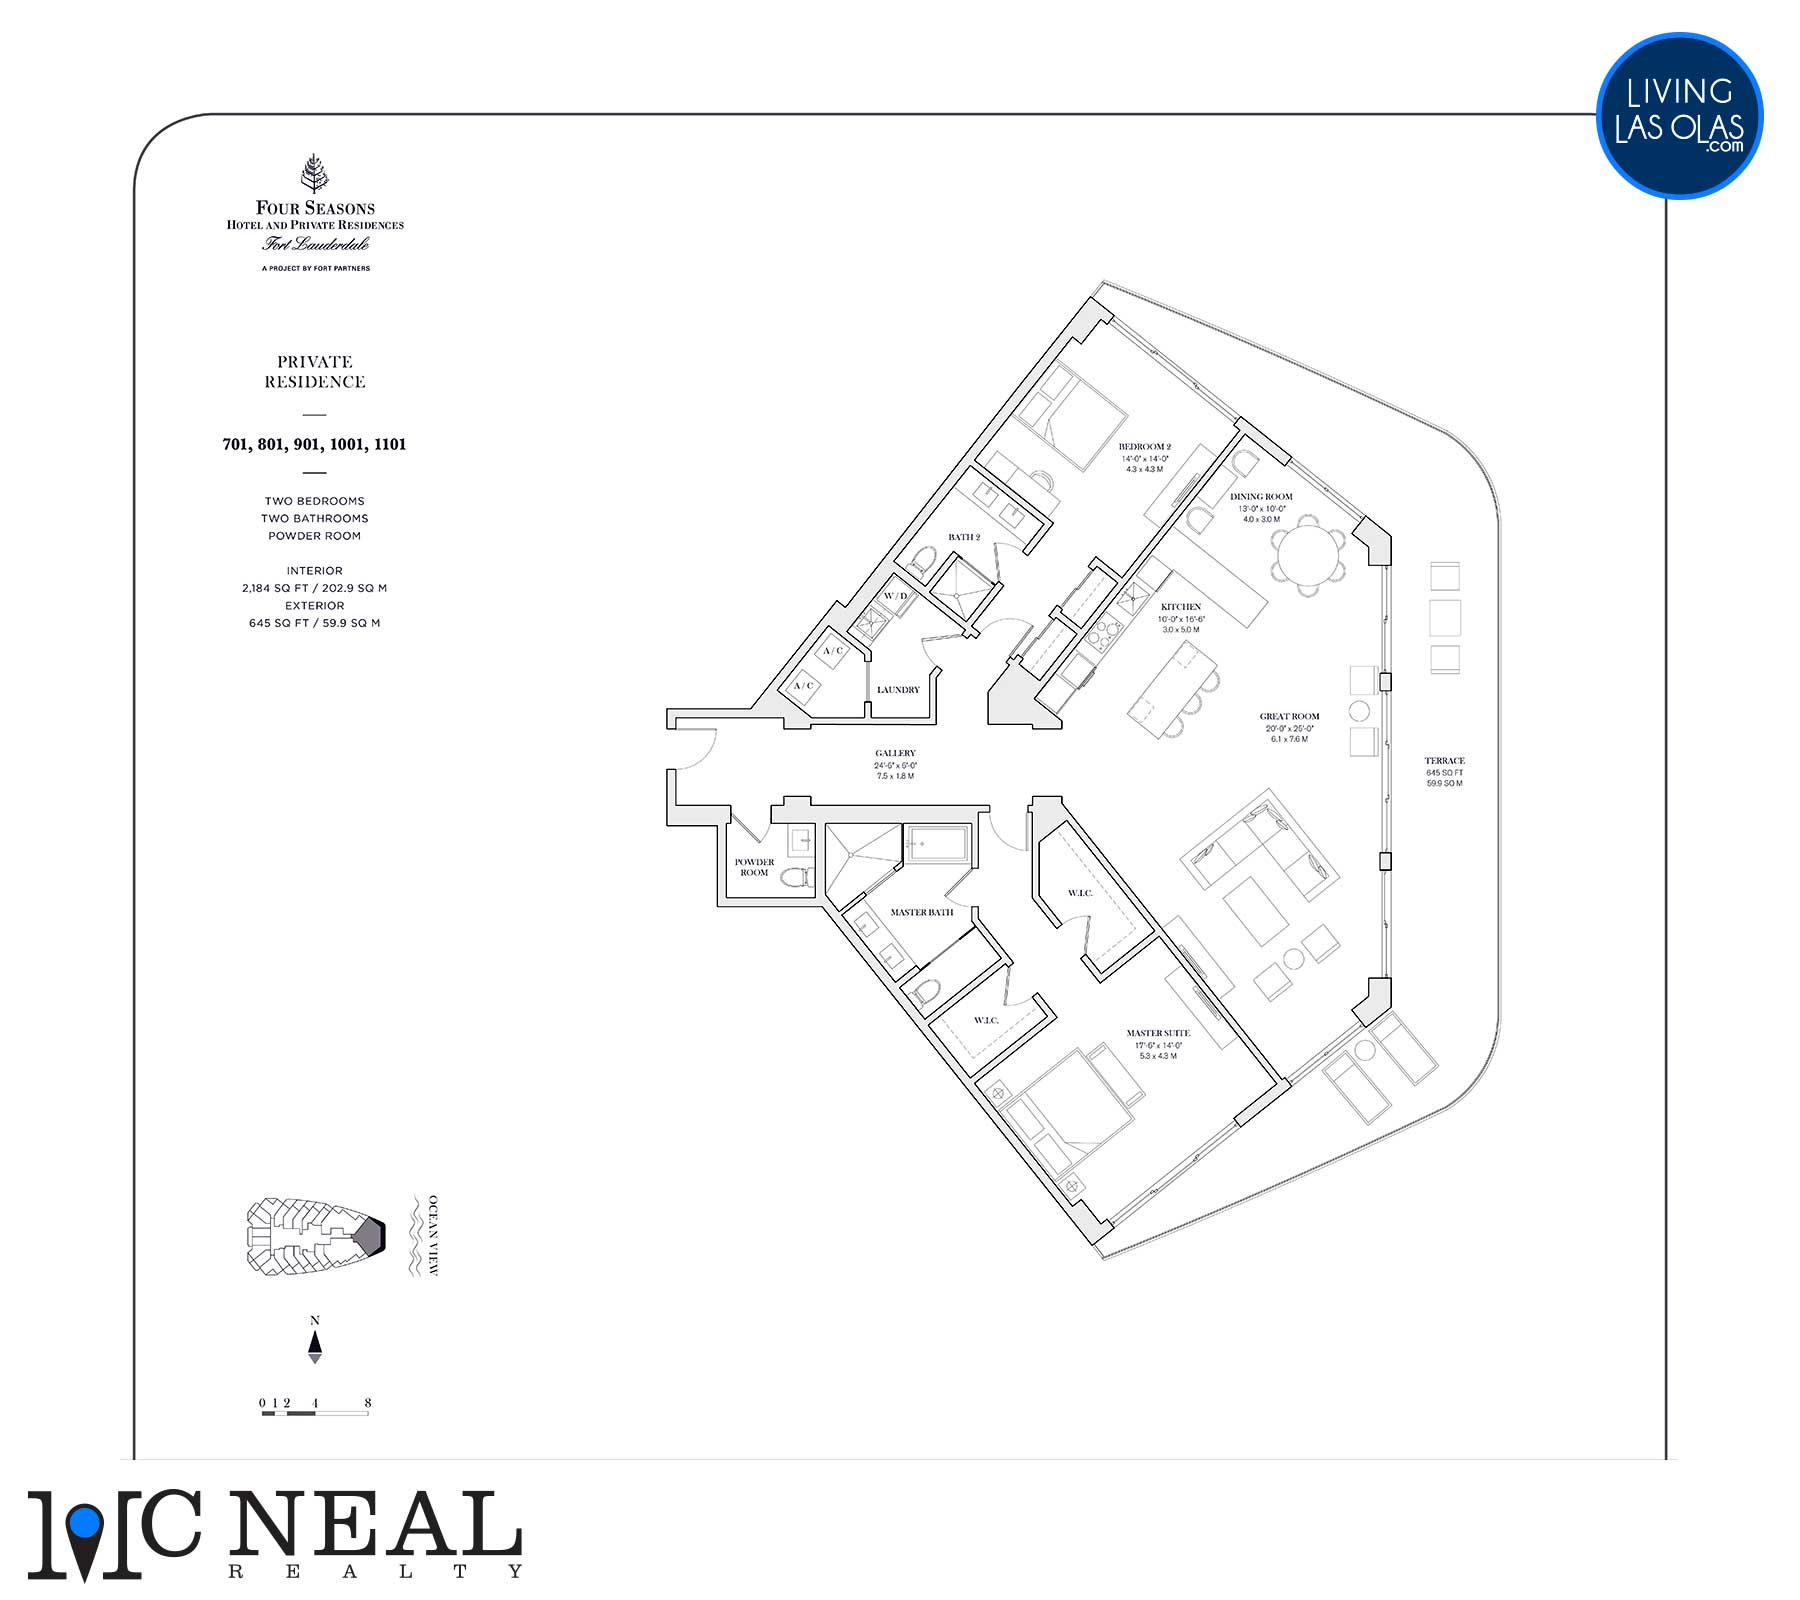 Four Seasons Private Residences Floor Plan 701-1101